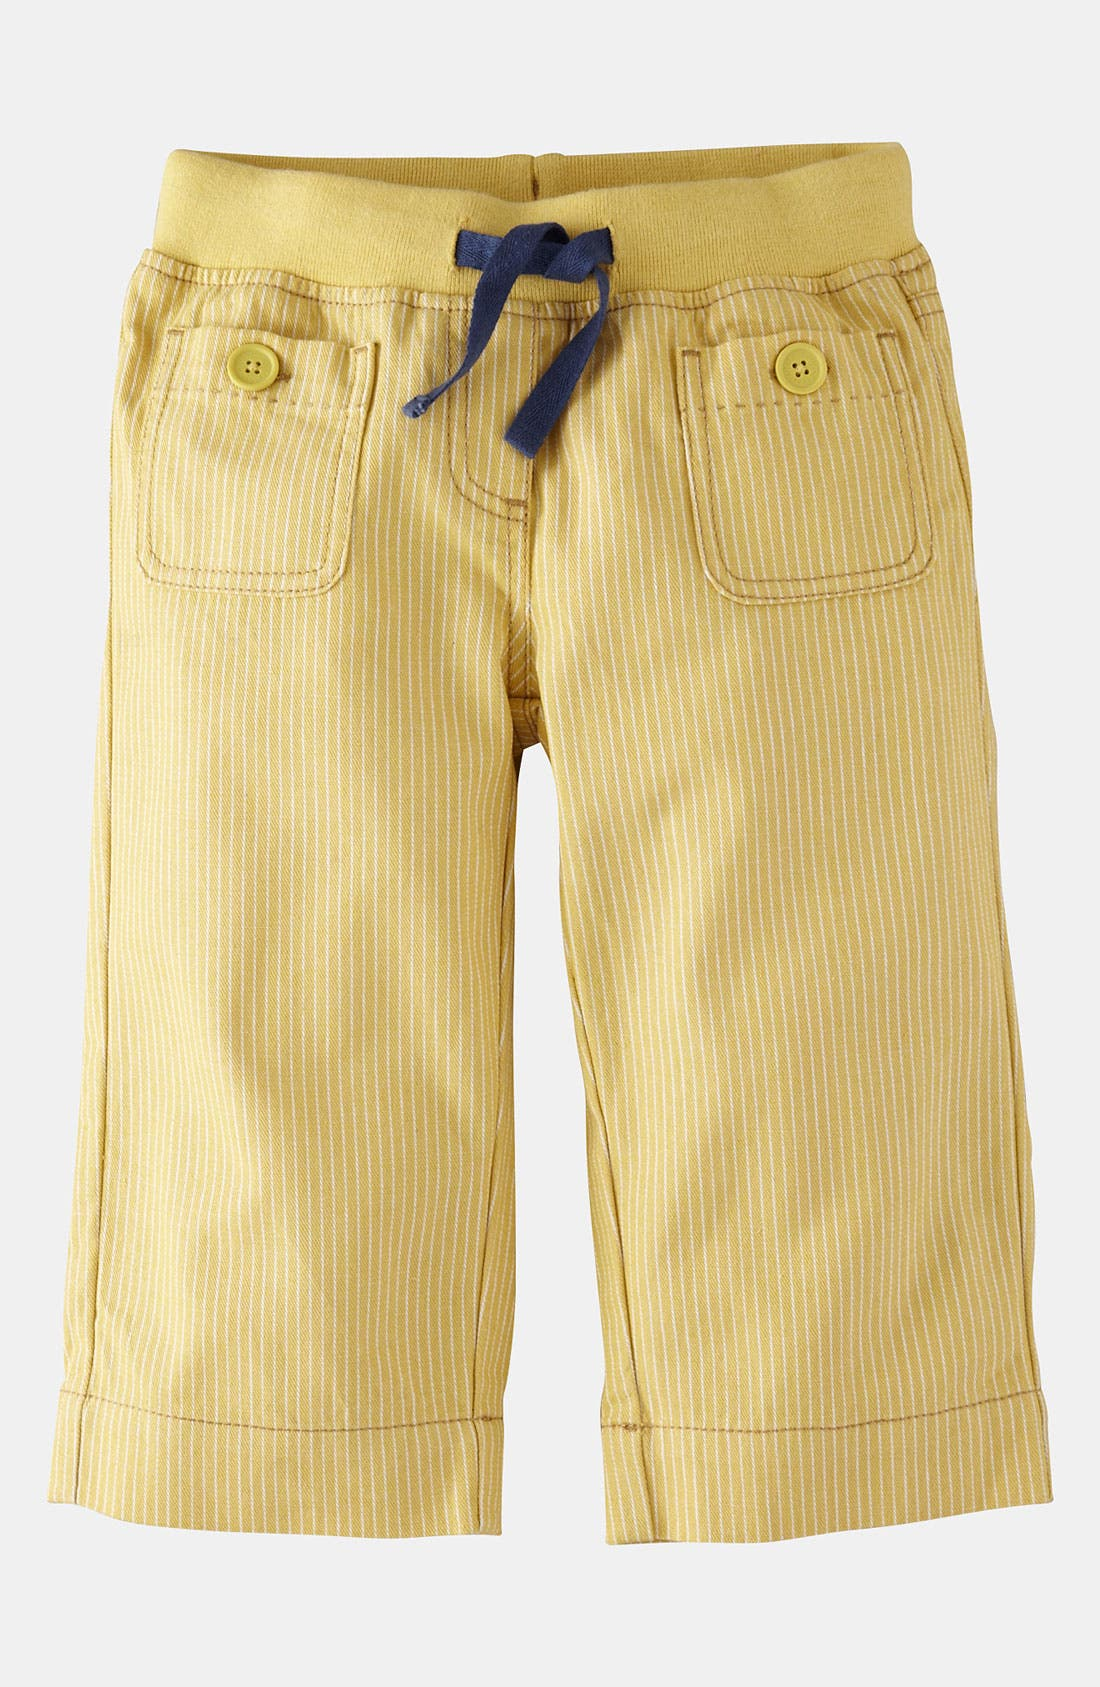 Main Image - Mini Boden 'Sailor' Capri Pants (Little Girls & Big Girls)